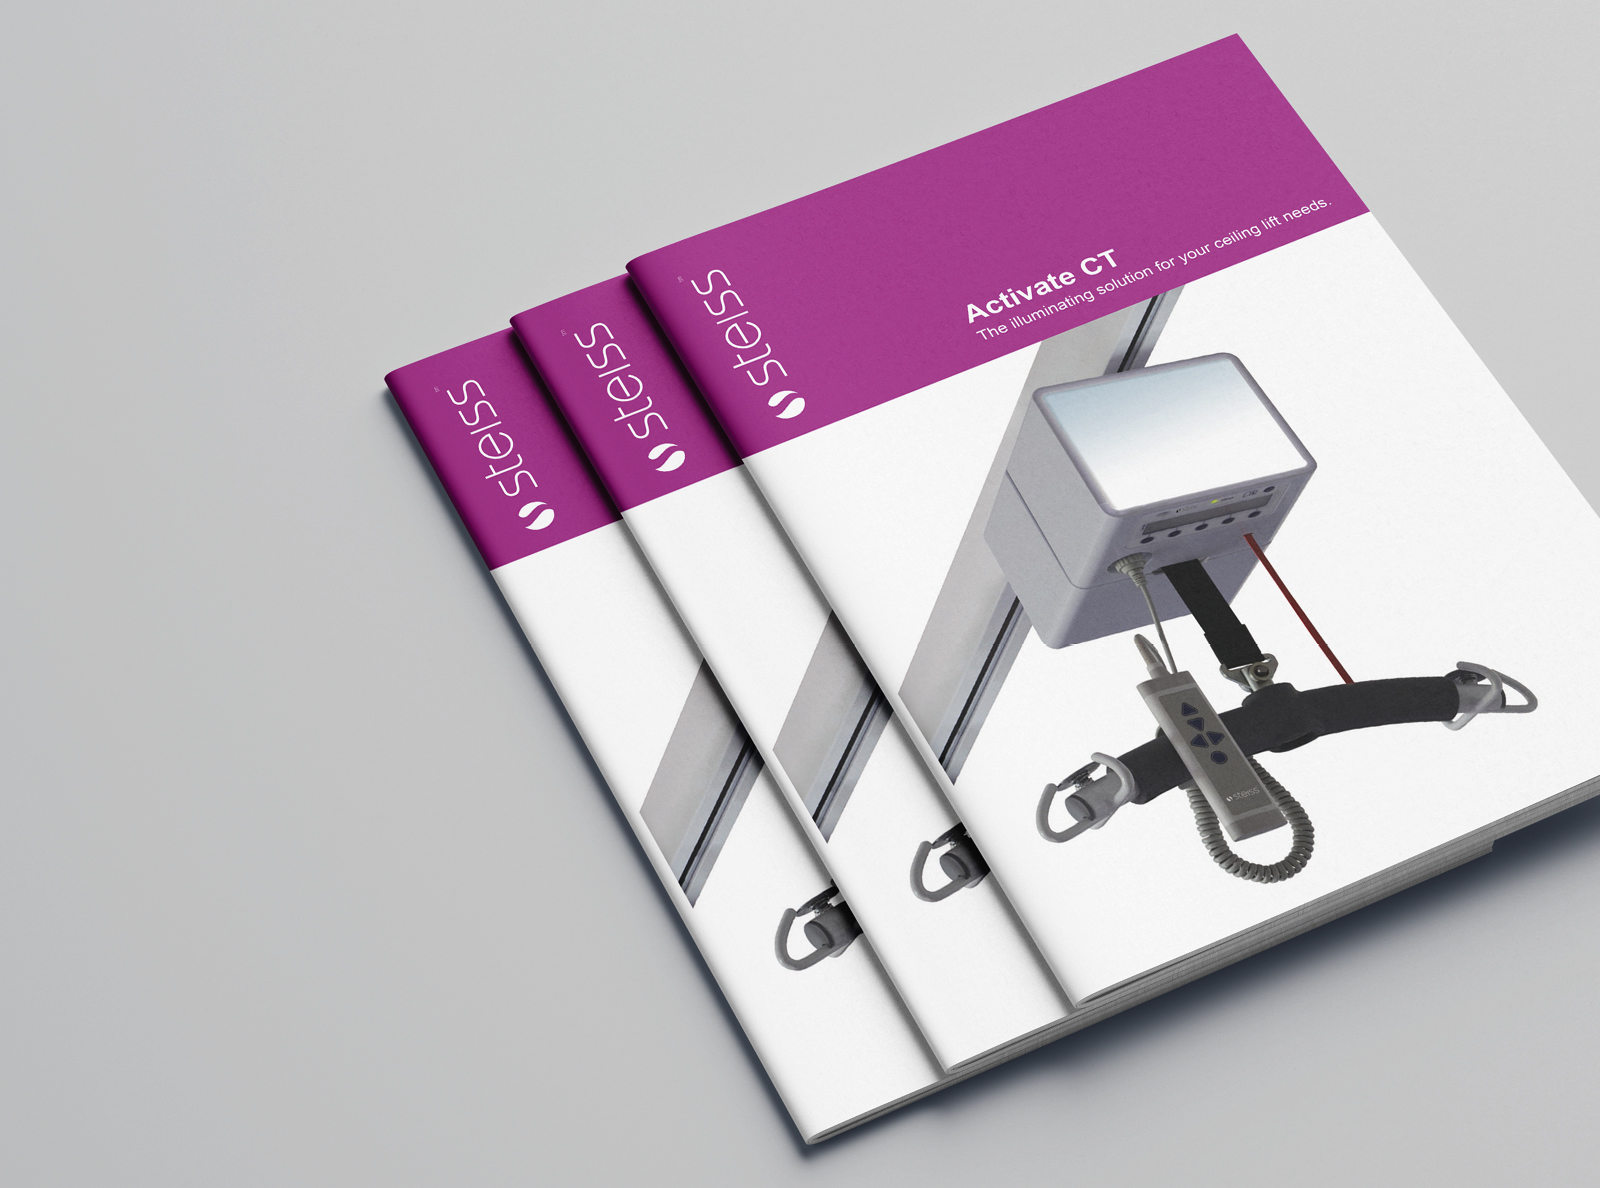 Medical-healthcare-equipment-marketing-collateral-brochure